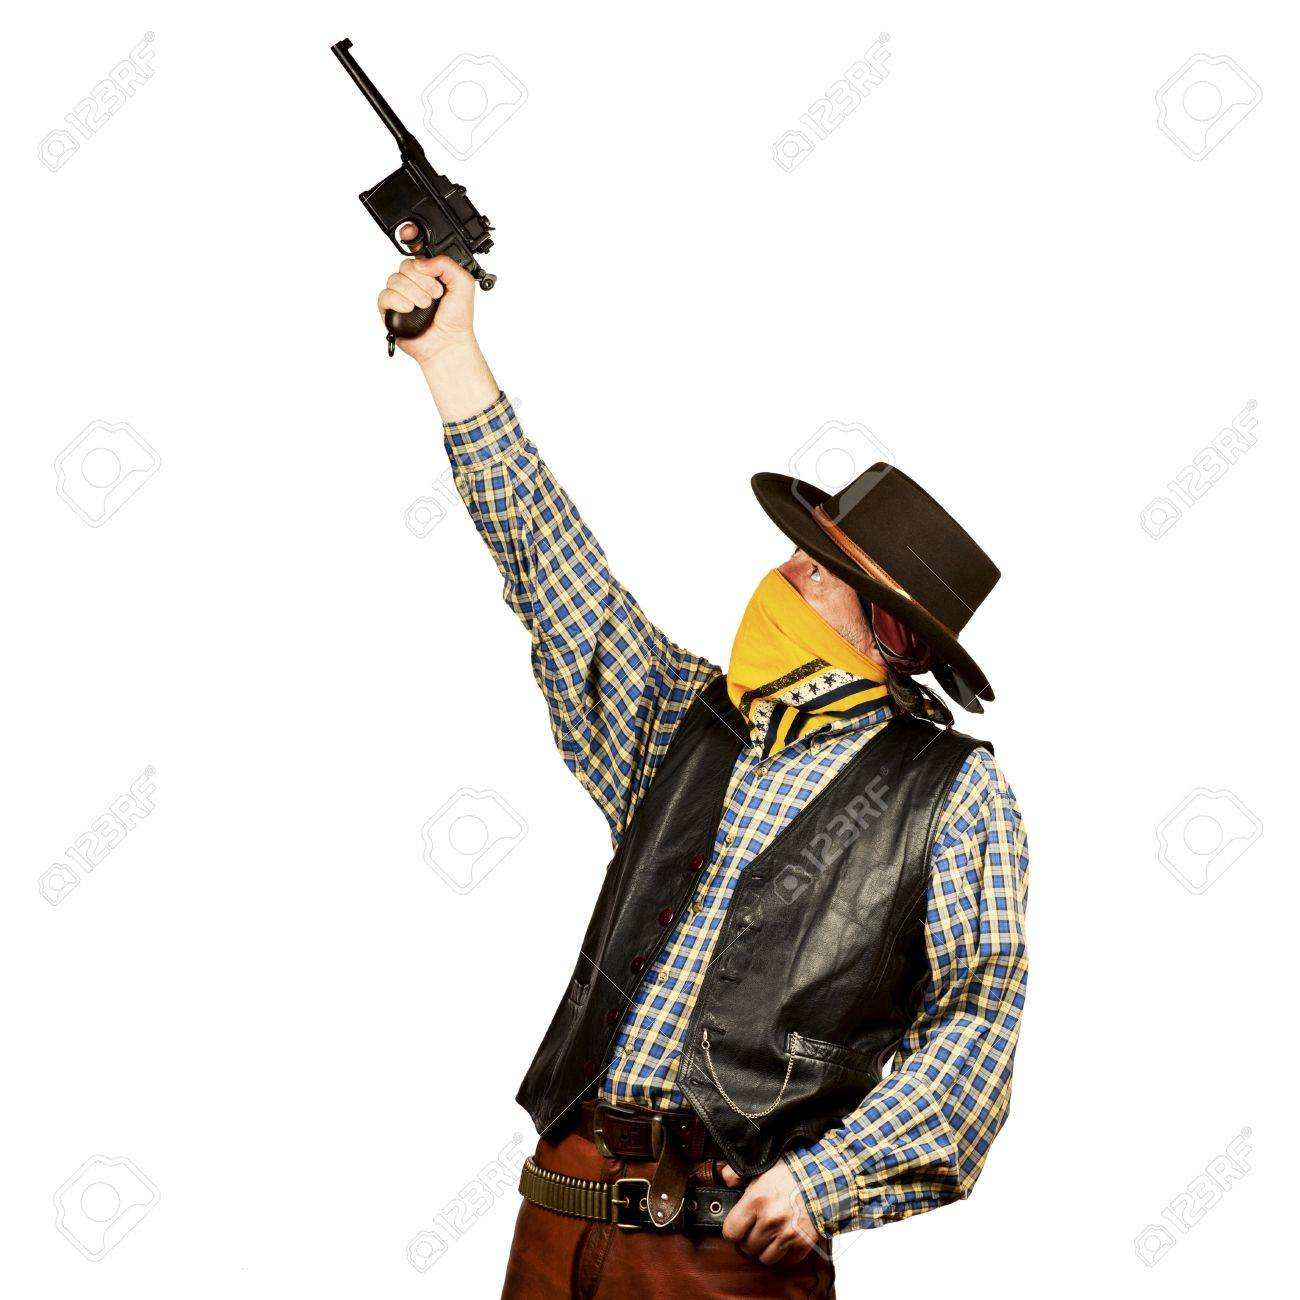 bad guy tries to target someone on white square background Stock Photo - 19822175